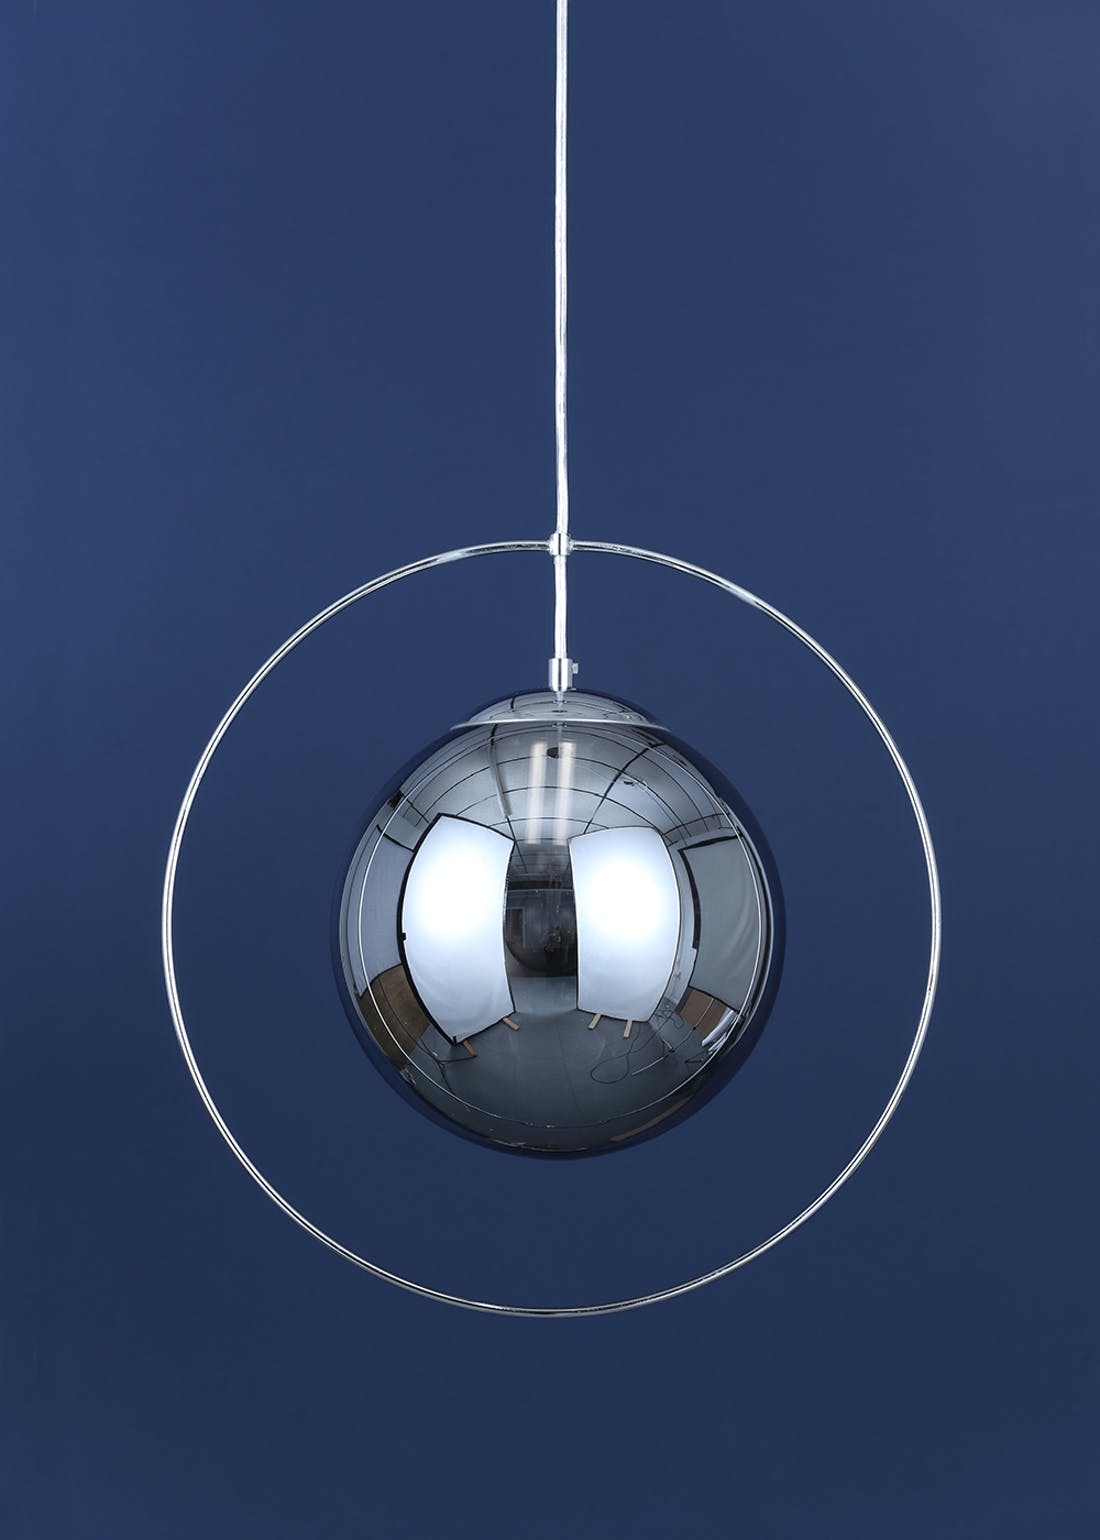 Inlight Mars Metal Ball Pendant Ceiling Light (100cm x 42cm x 42cm)